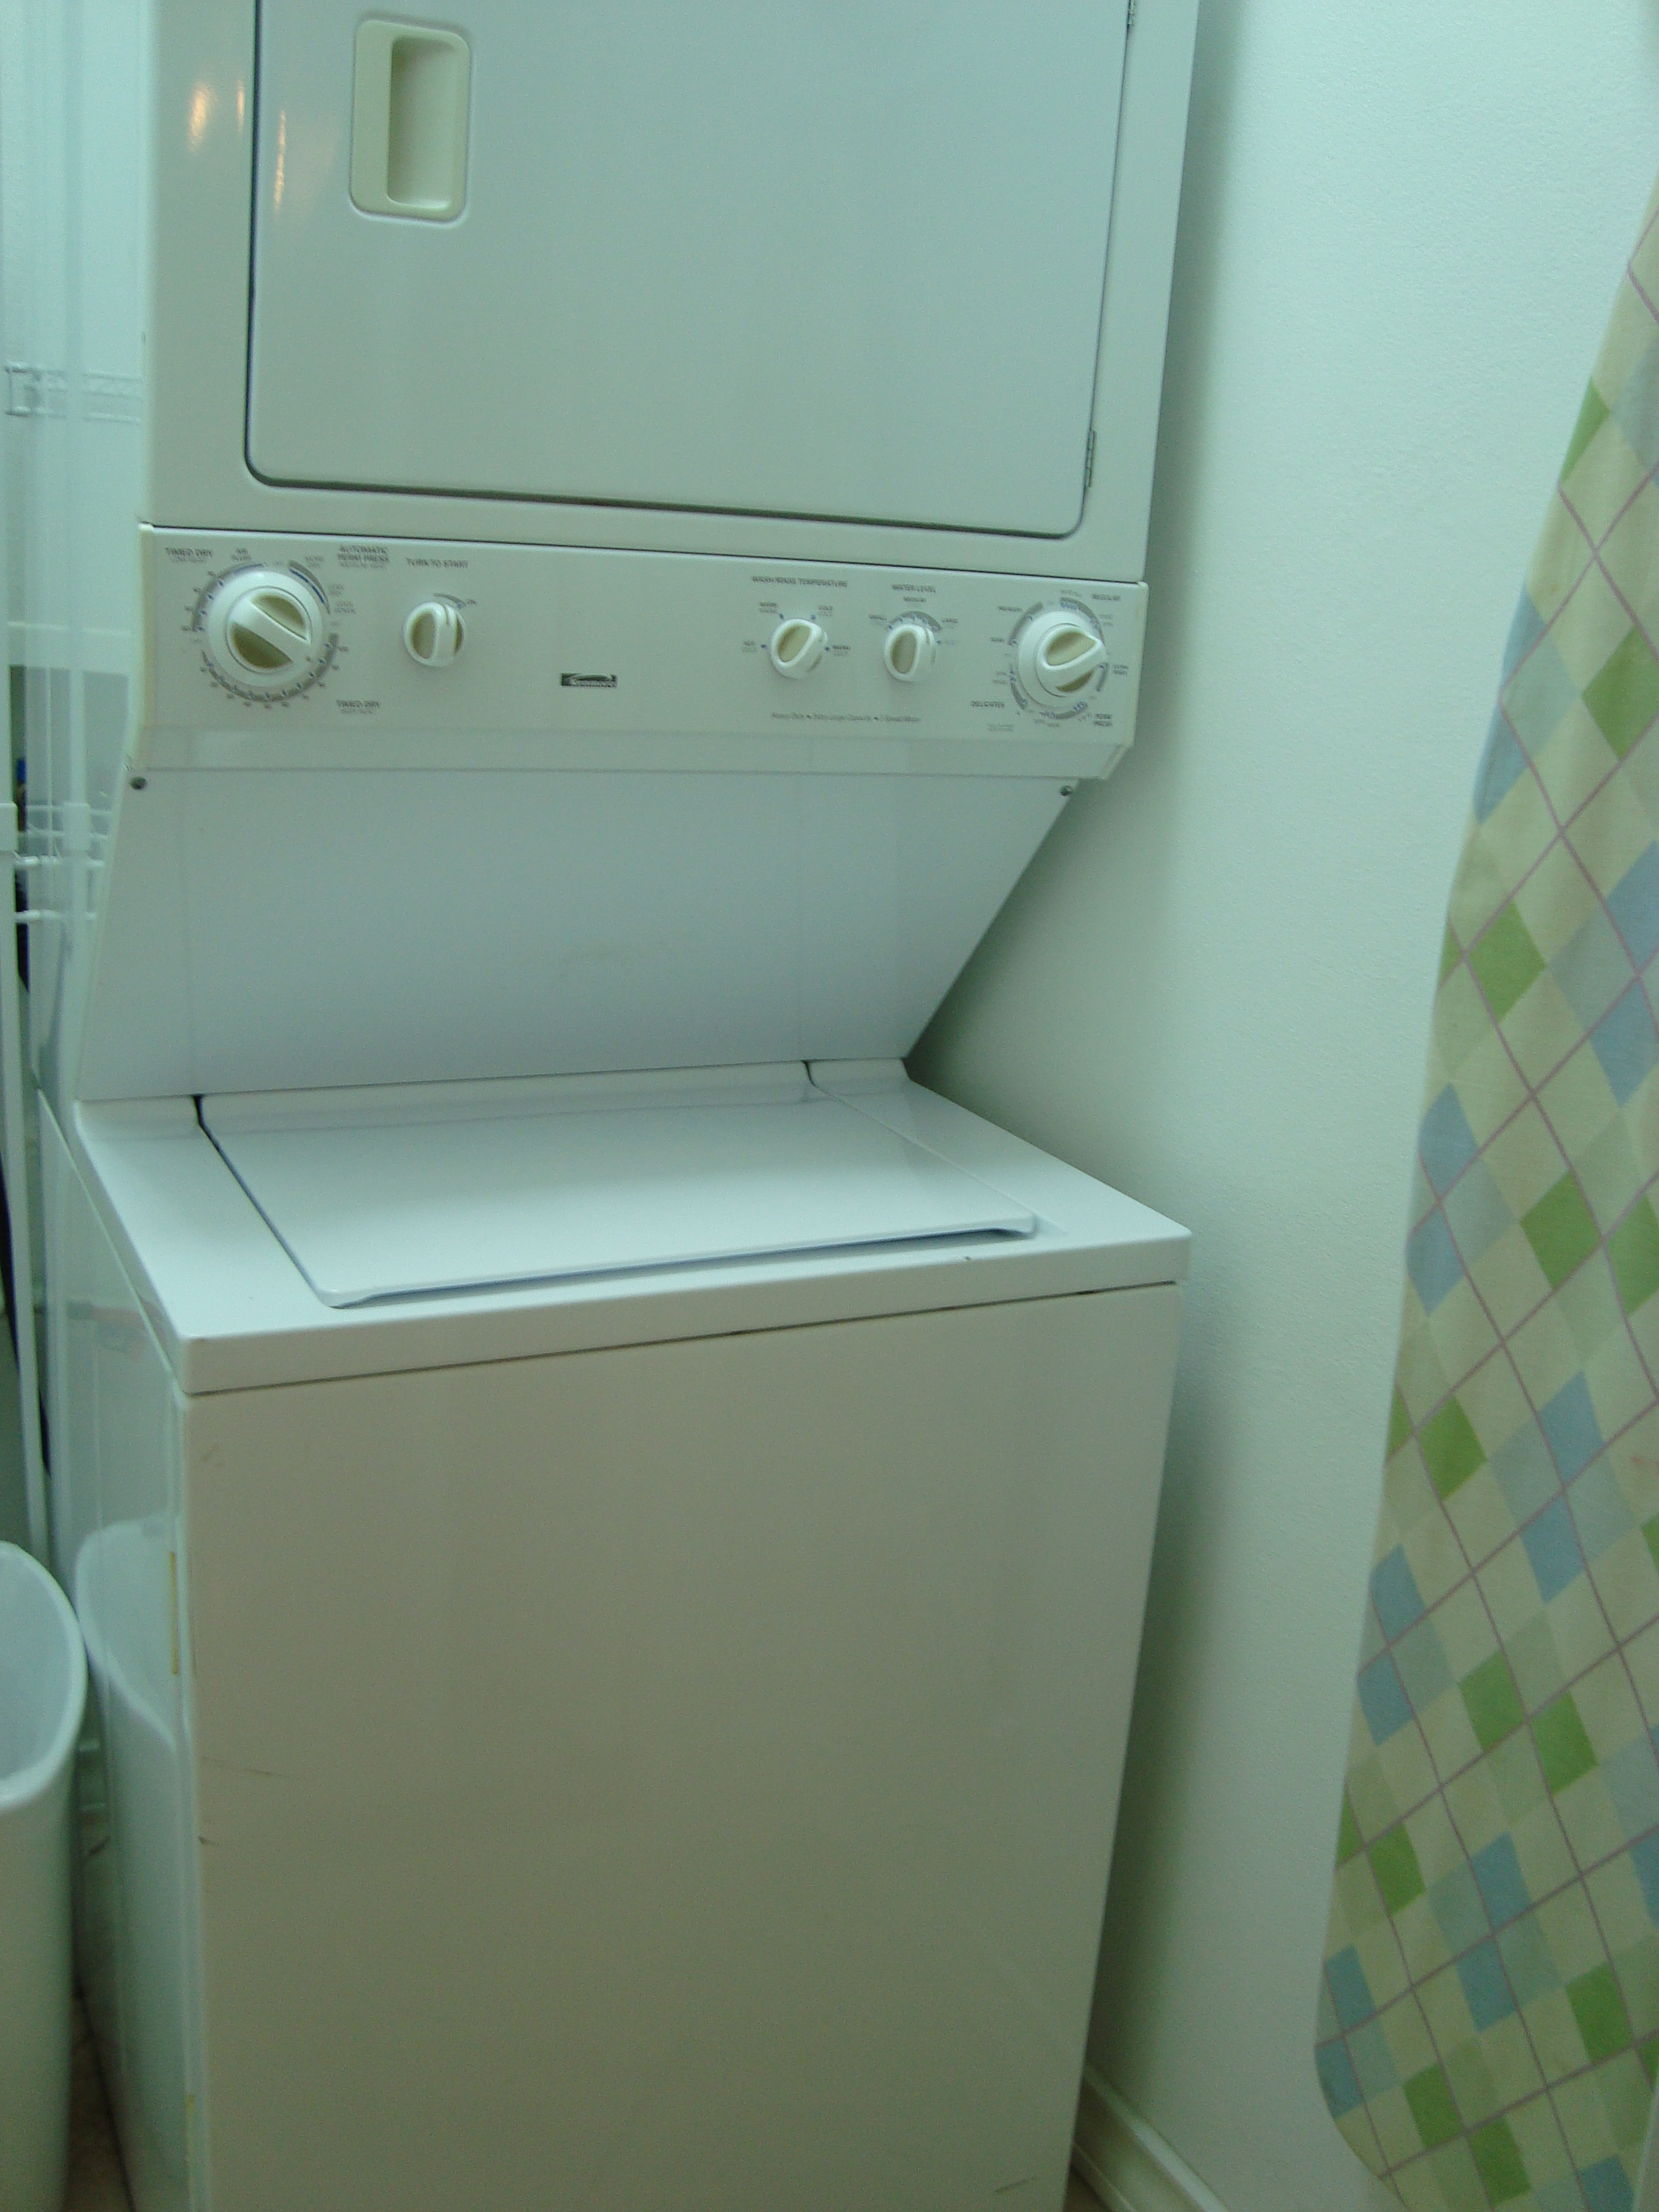 1 Bedroom Apartments With Washer And Dryer 28 Images